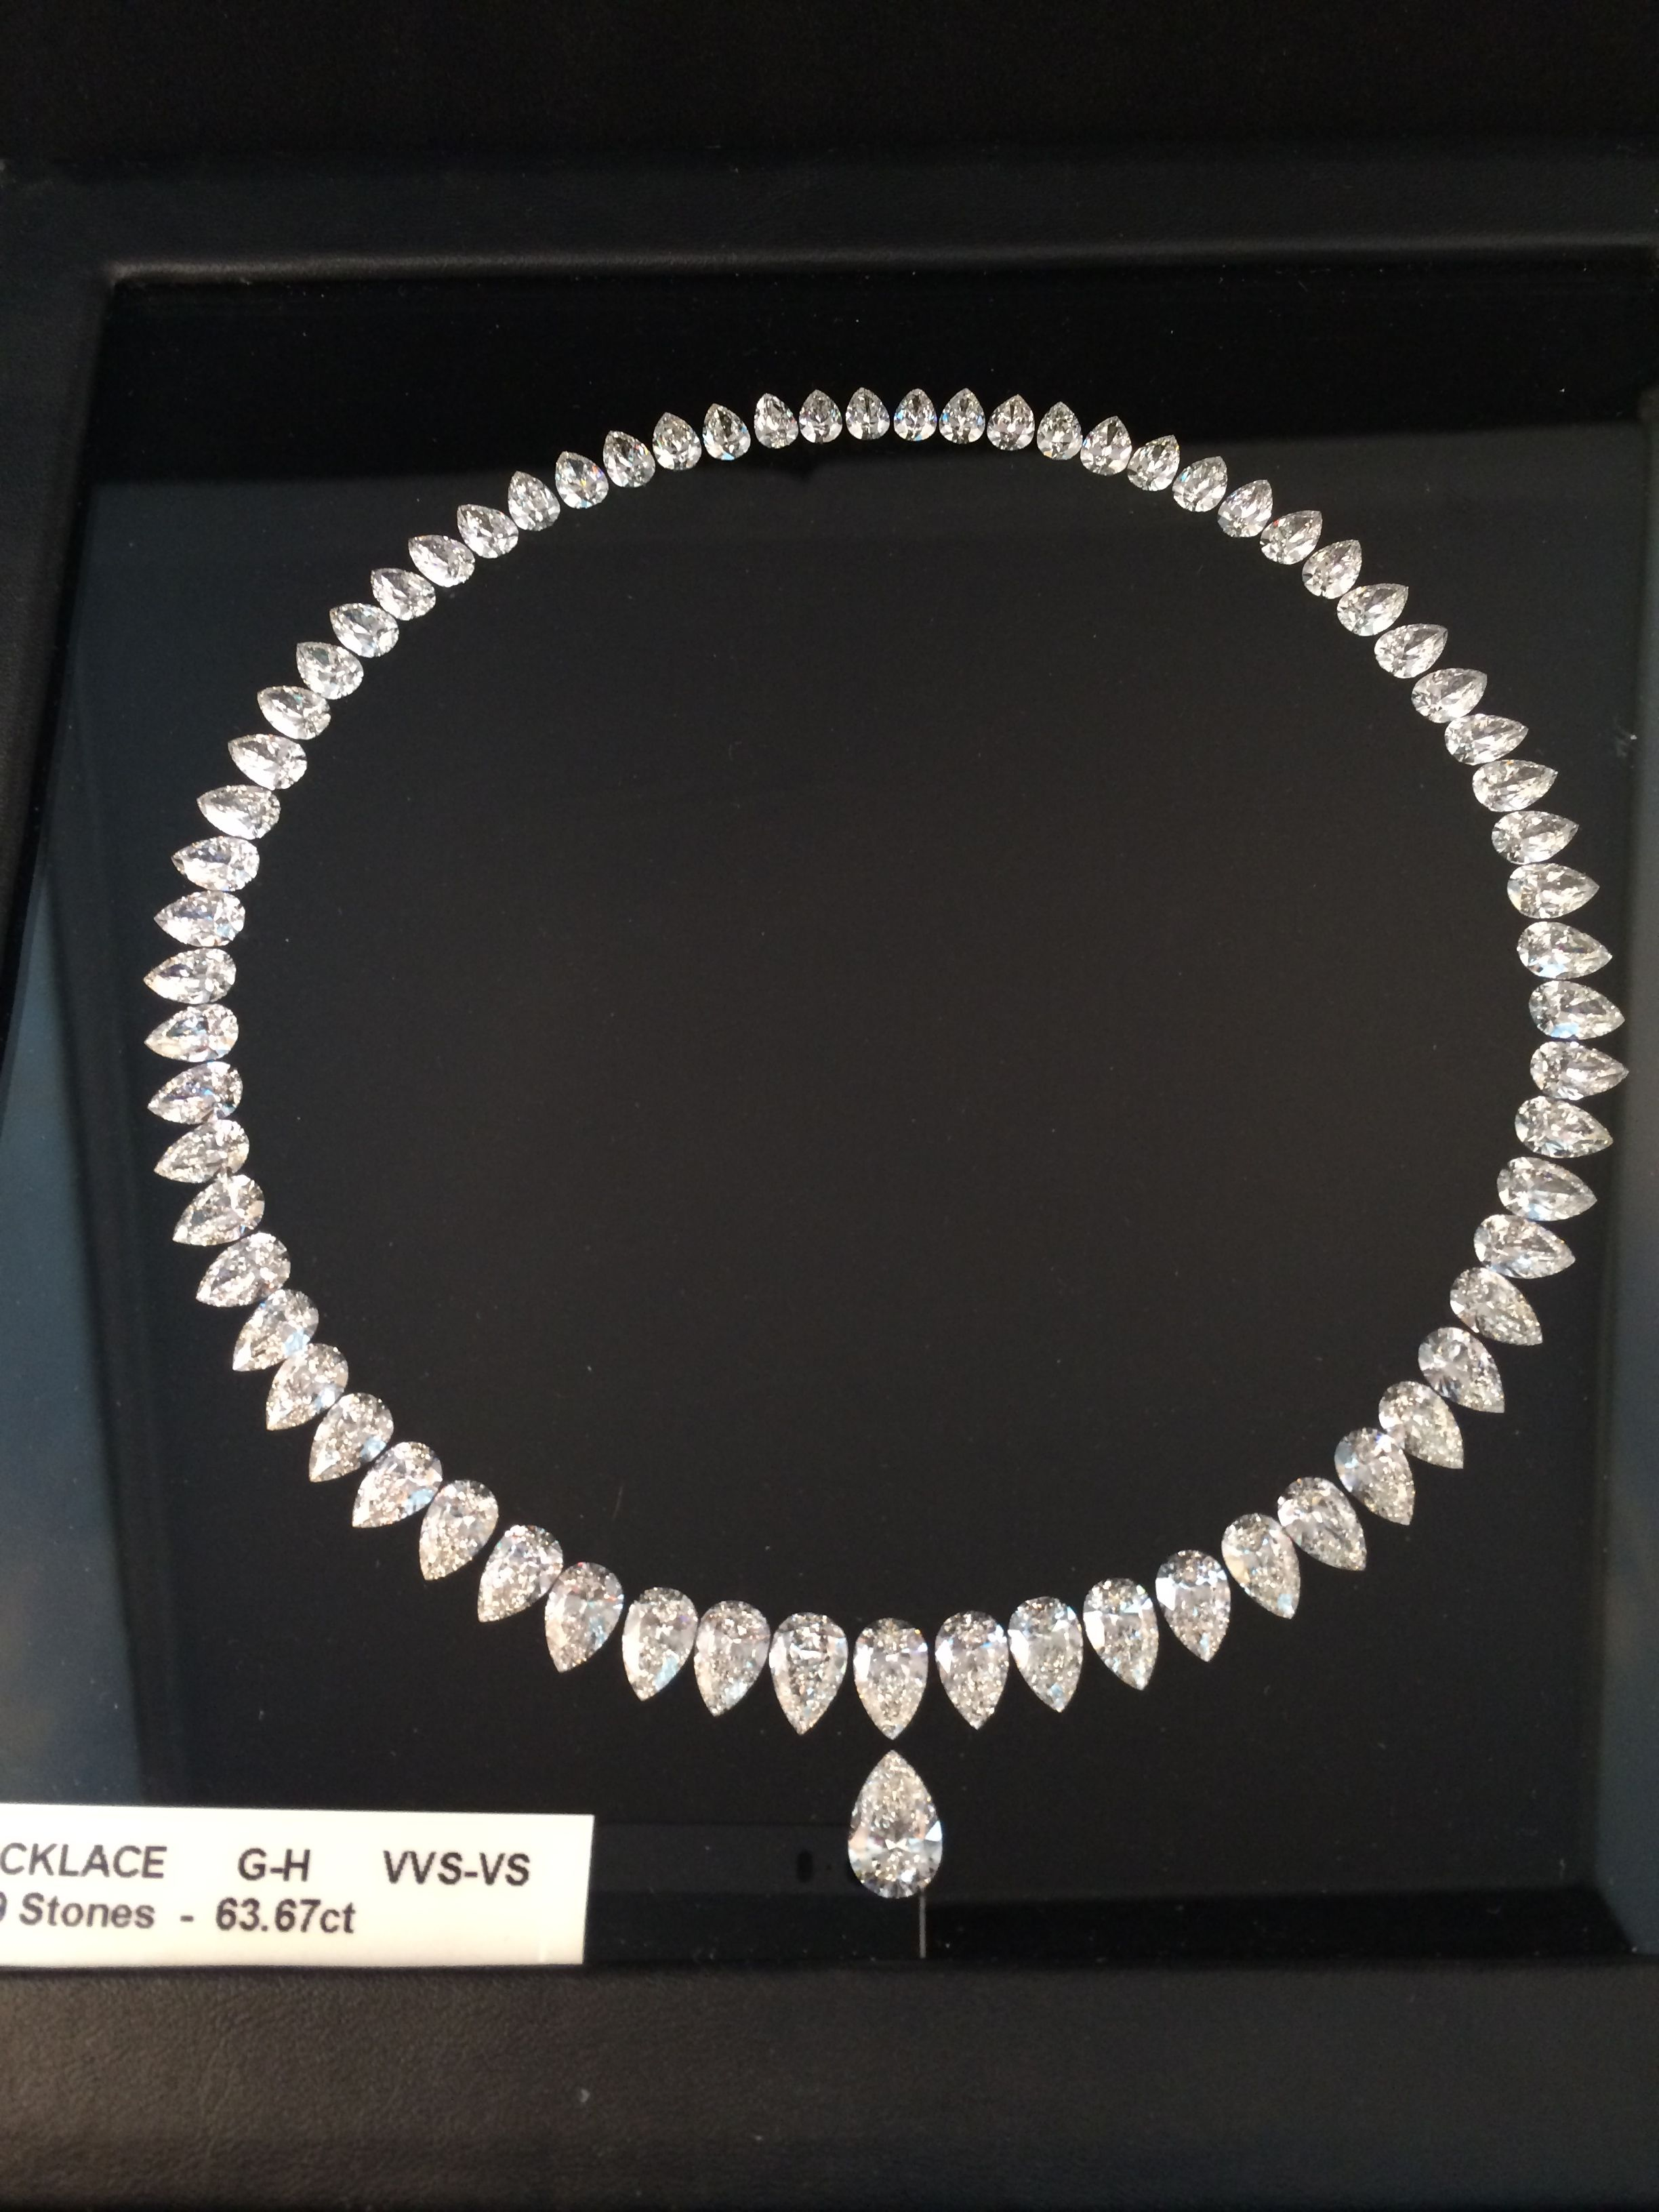 #Diamondsale Brand New Layout for necklace, starting at 0.50ct till 2ct GH VVS-VS GIA certified For more info and price: info@by-alain.com